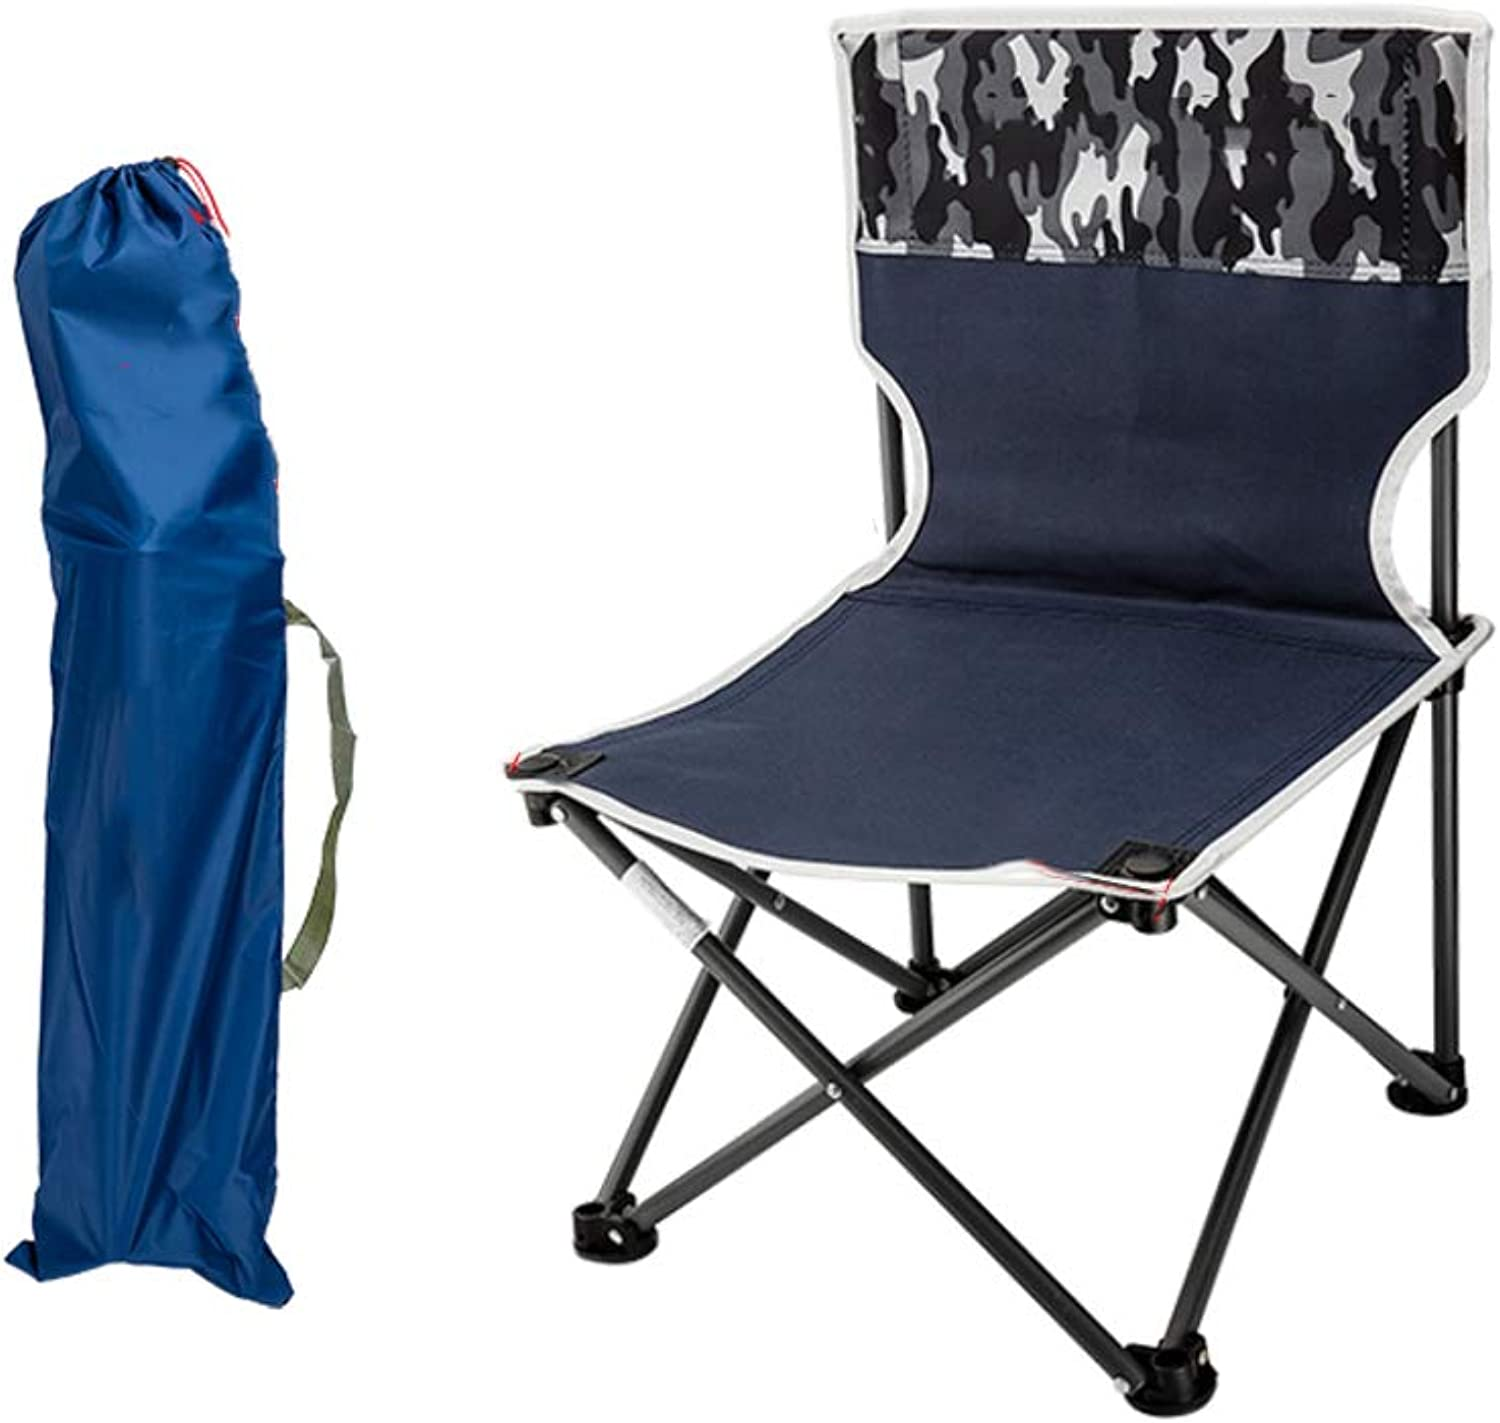 Outdoor Folding Stool Portable Camping Chairs, Fishing Sketch Beach Backrest Folding Chair LightweightCamouflage bluee M